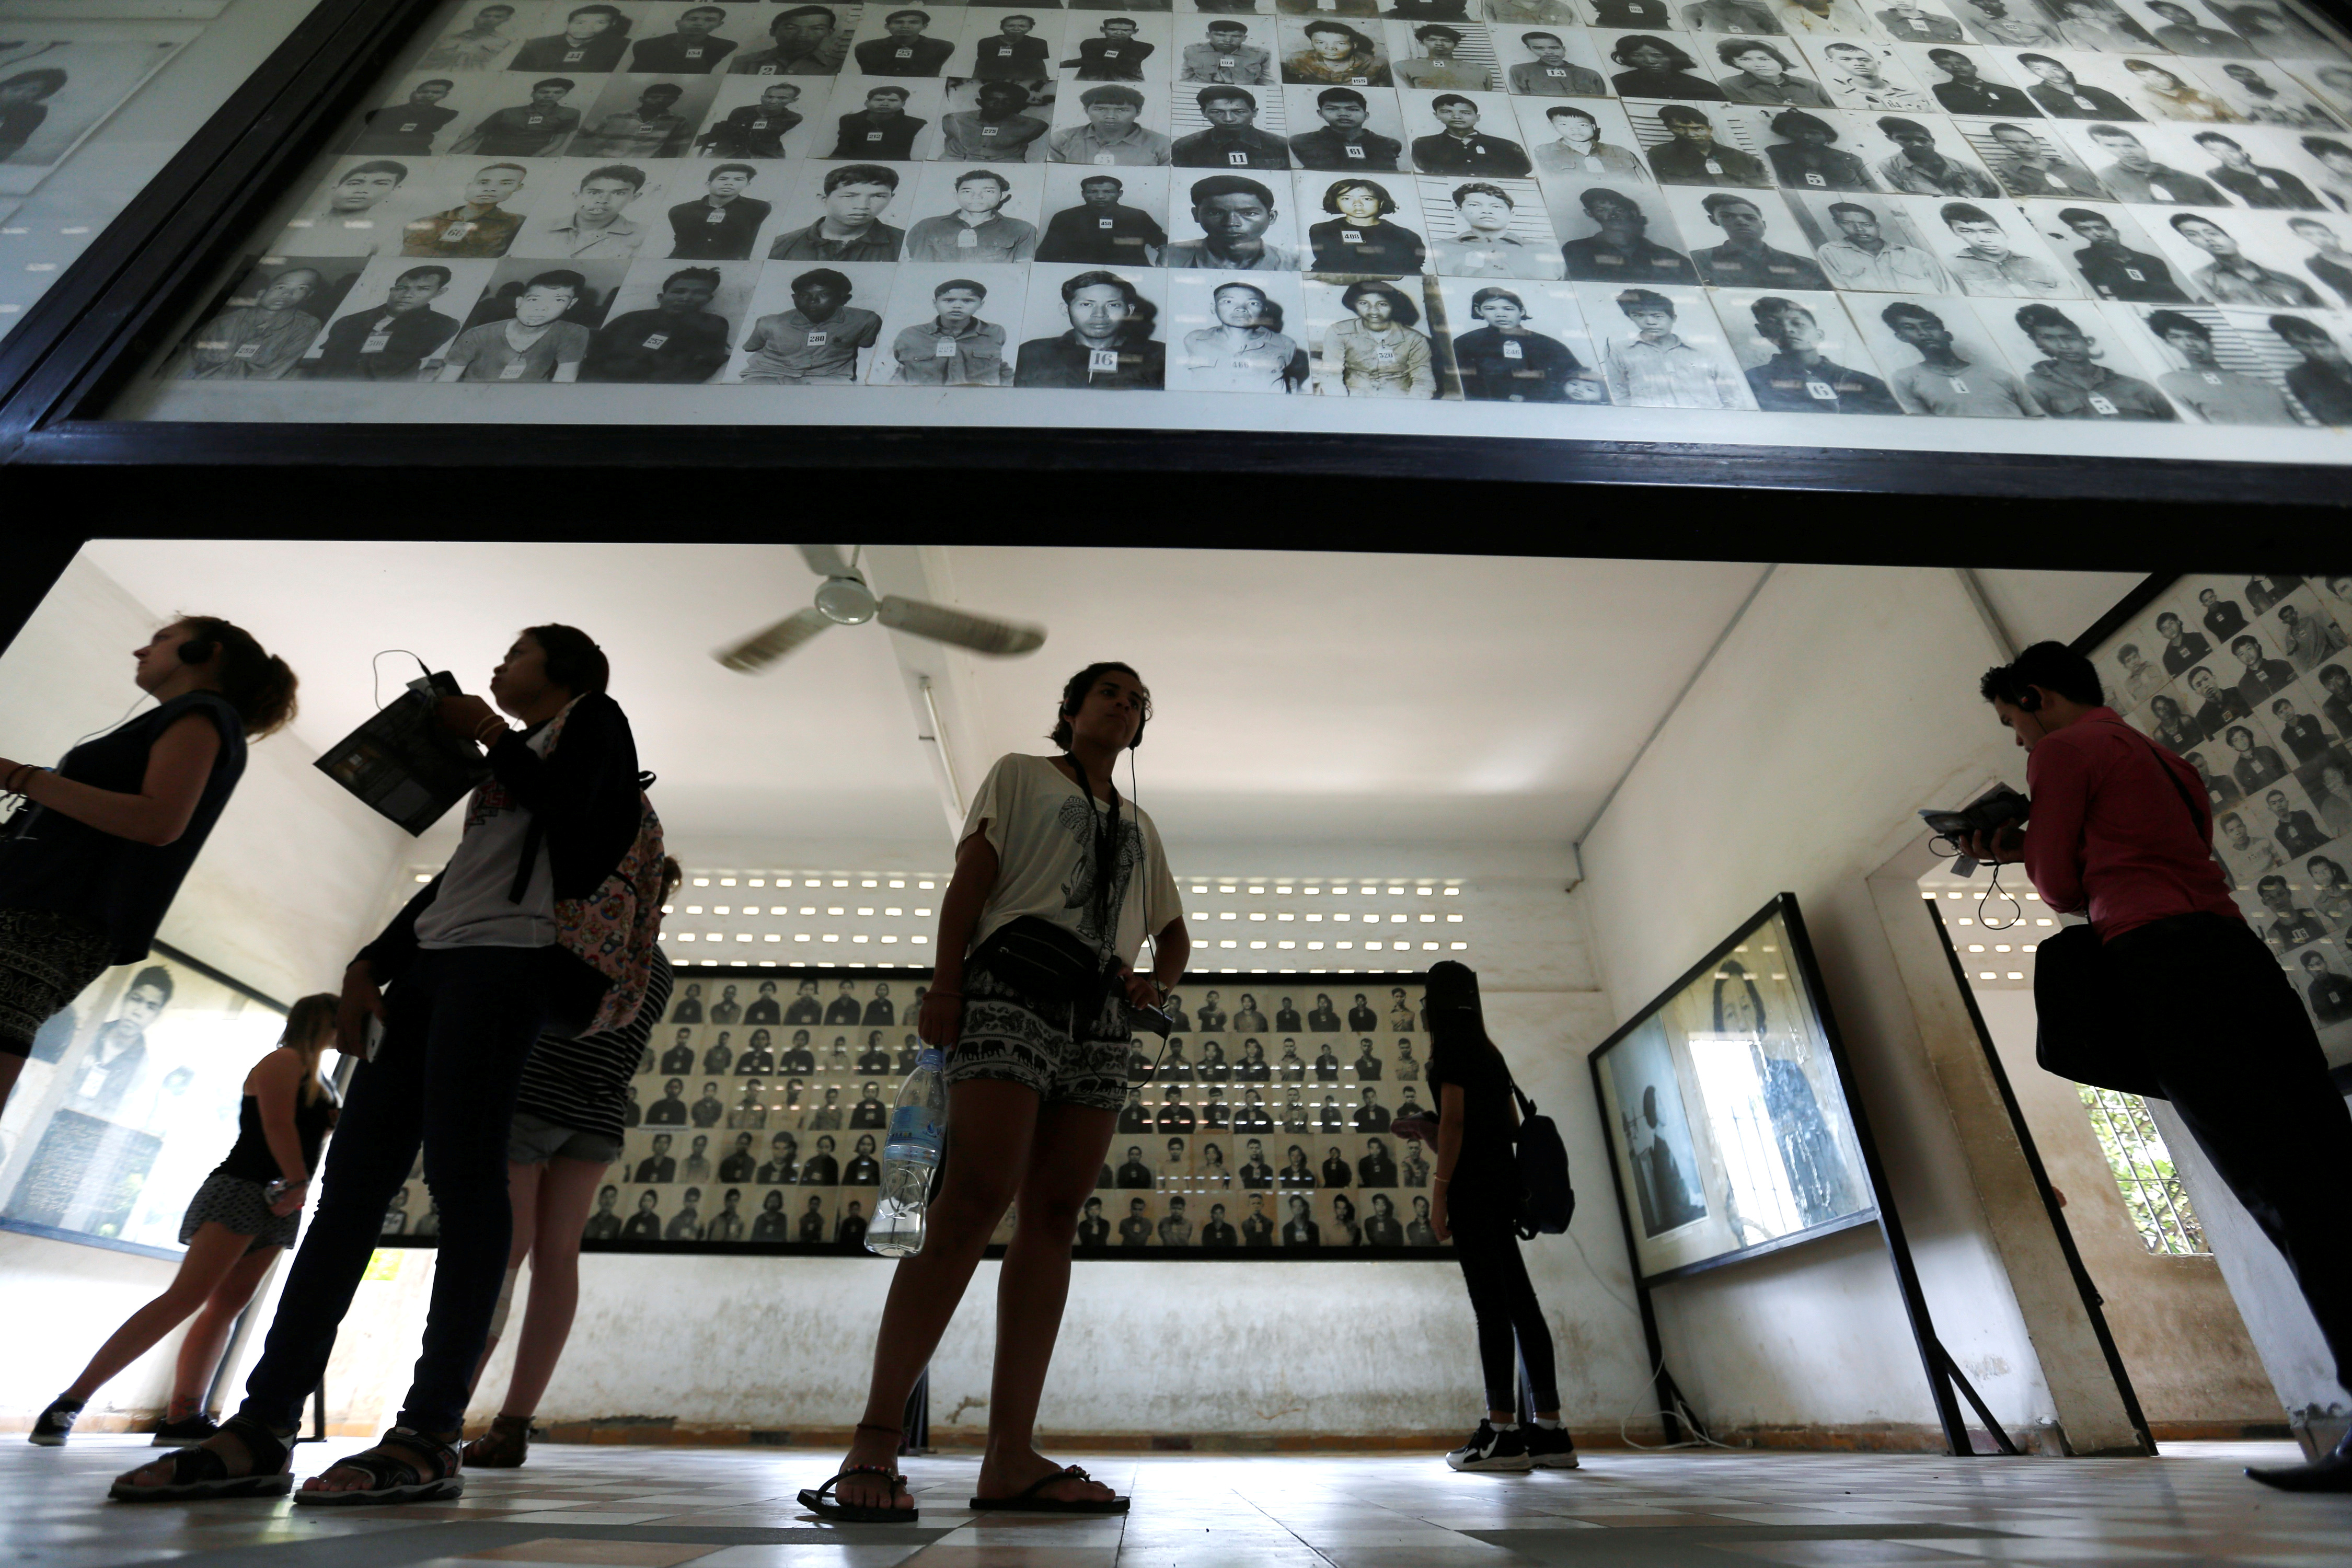 A visitor looks at pictures of victims of the Khmer Rouge regime at Tuol Sleng Genocide Museum in Phnom Penh, Cambodia June 1, 2016. REUTERS/Samrang Pring